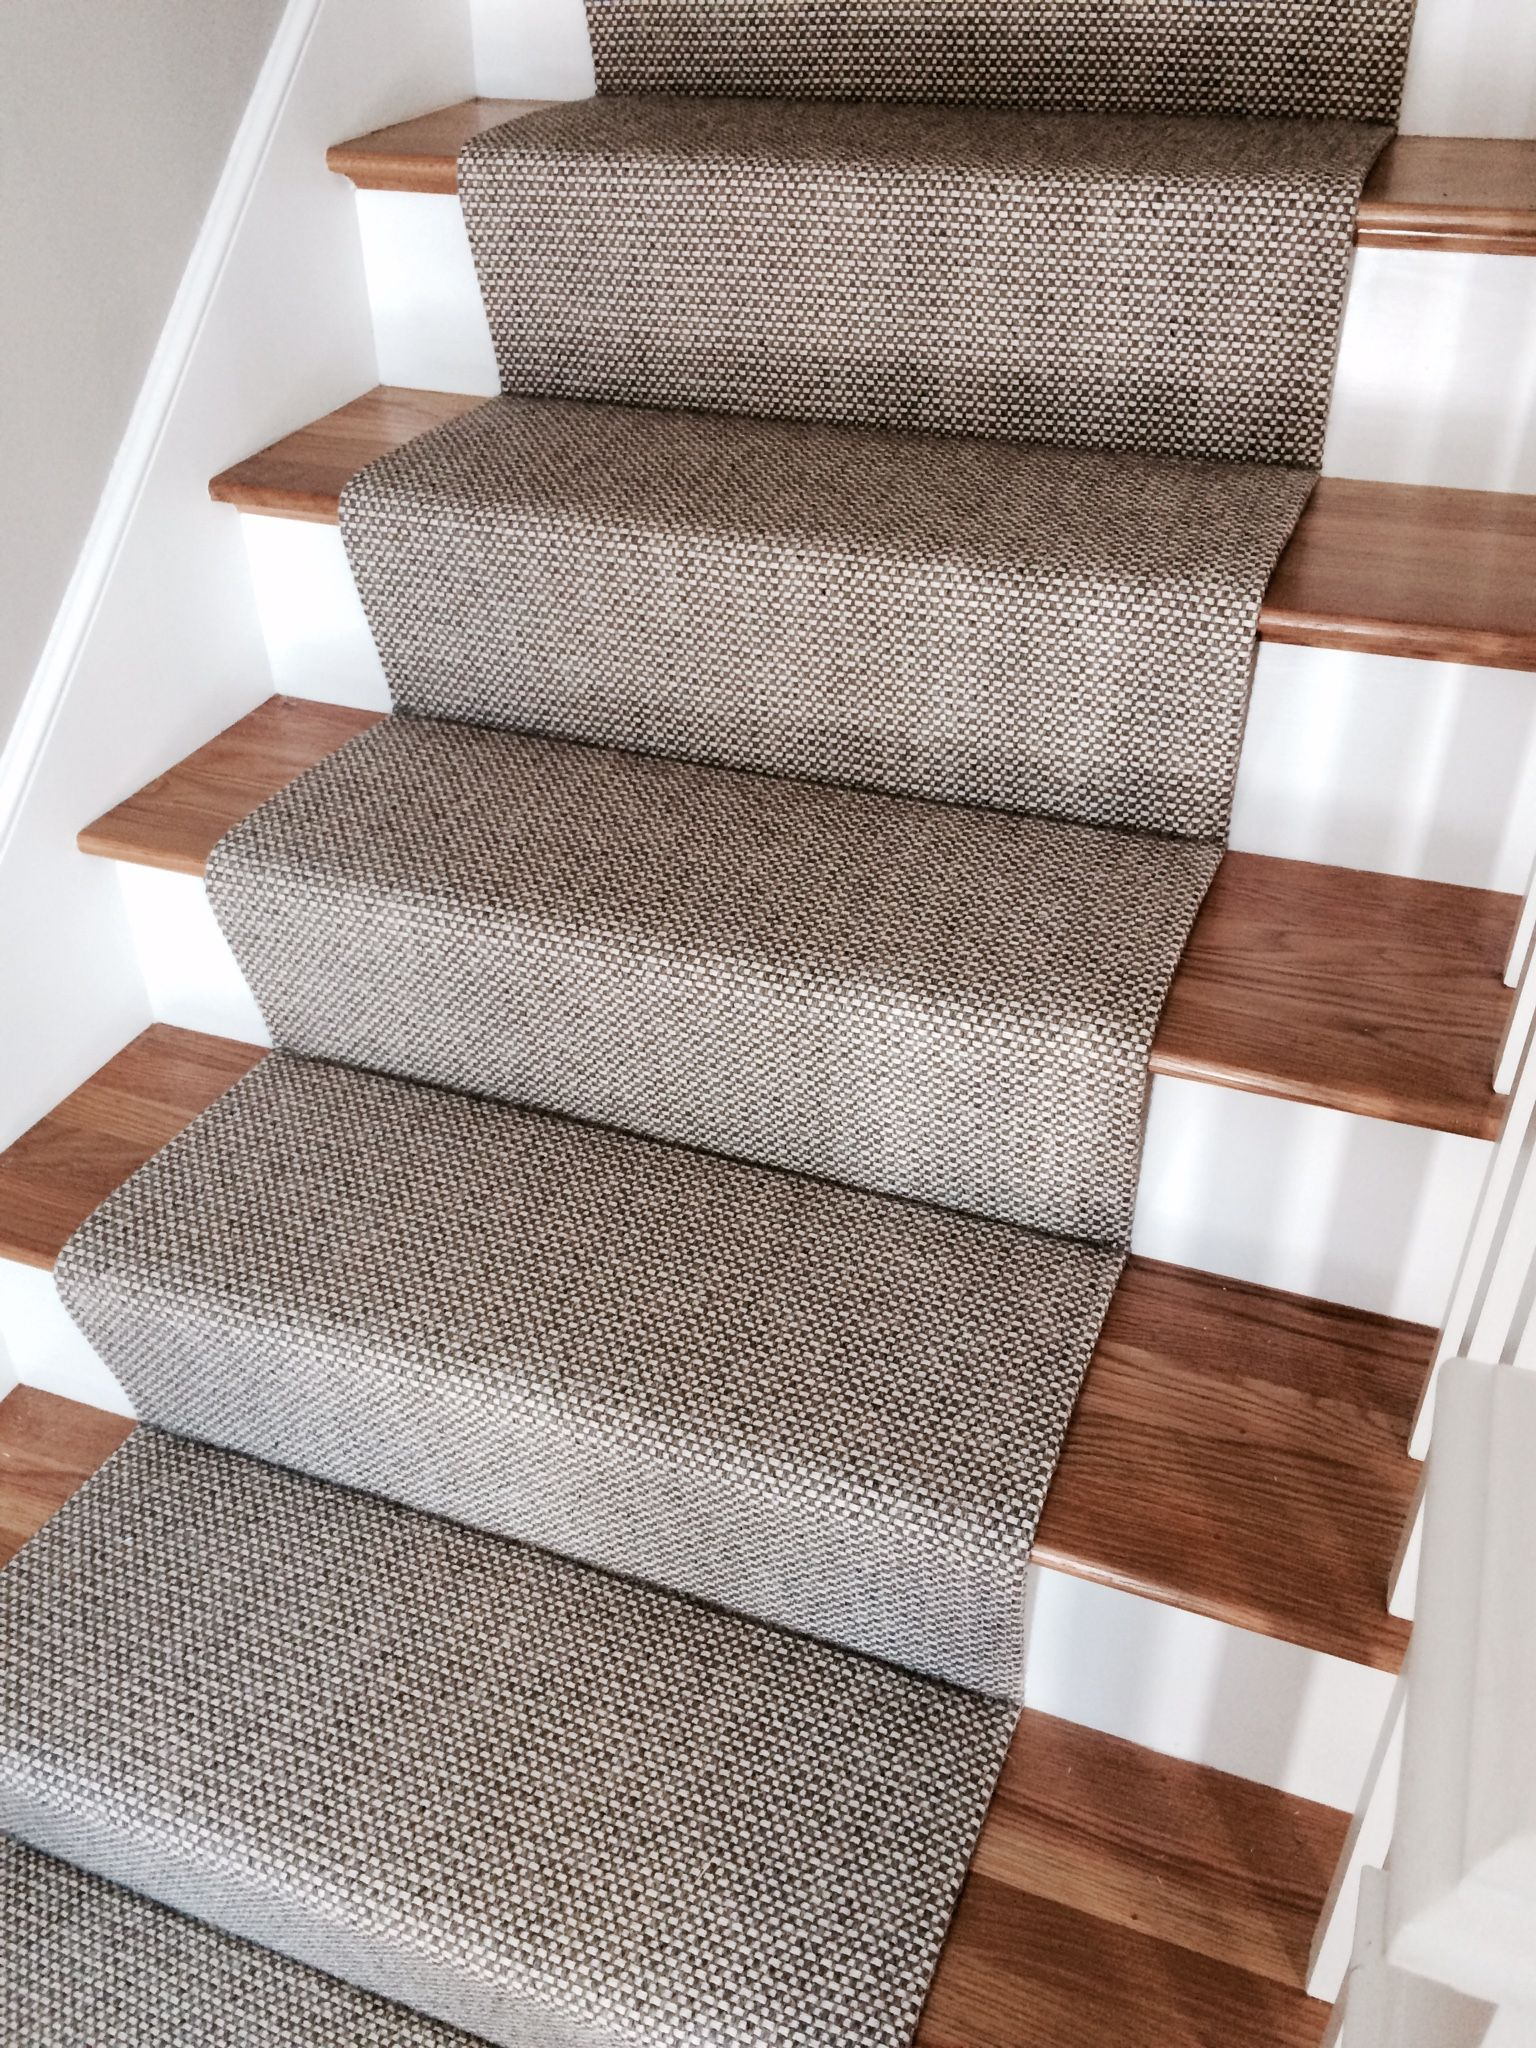 This Merida Flat Woven Wool Stair Runner By The Carpet Workroom Was  Fabricated Using A Fold And Stitch Method.